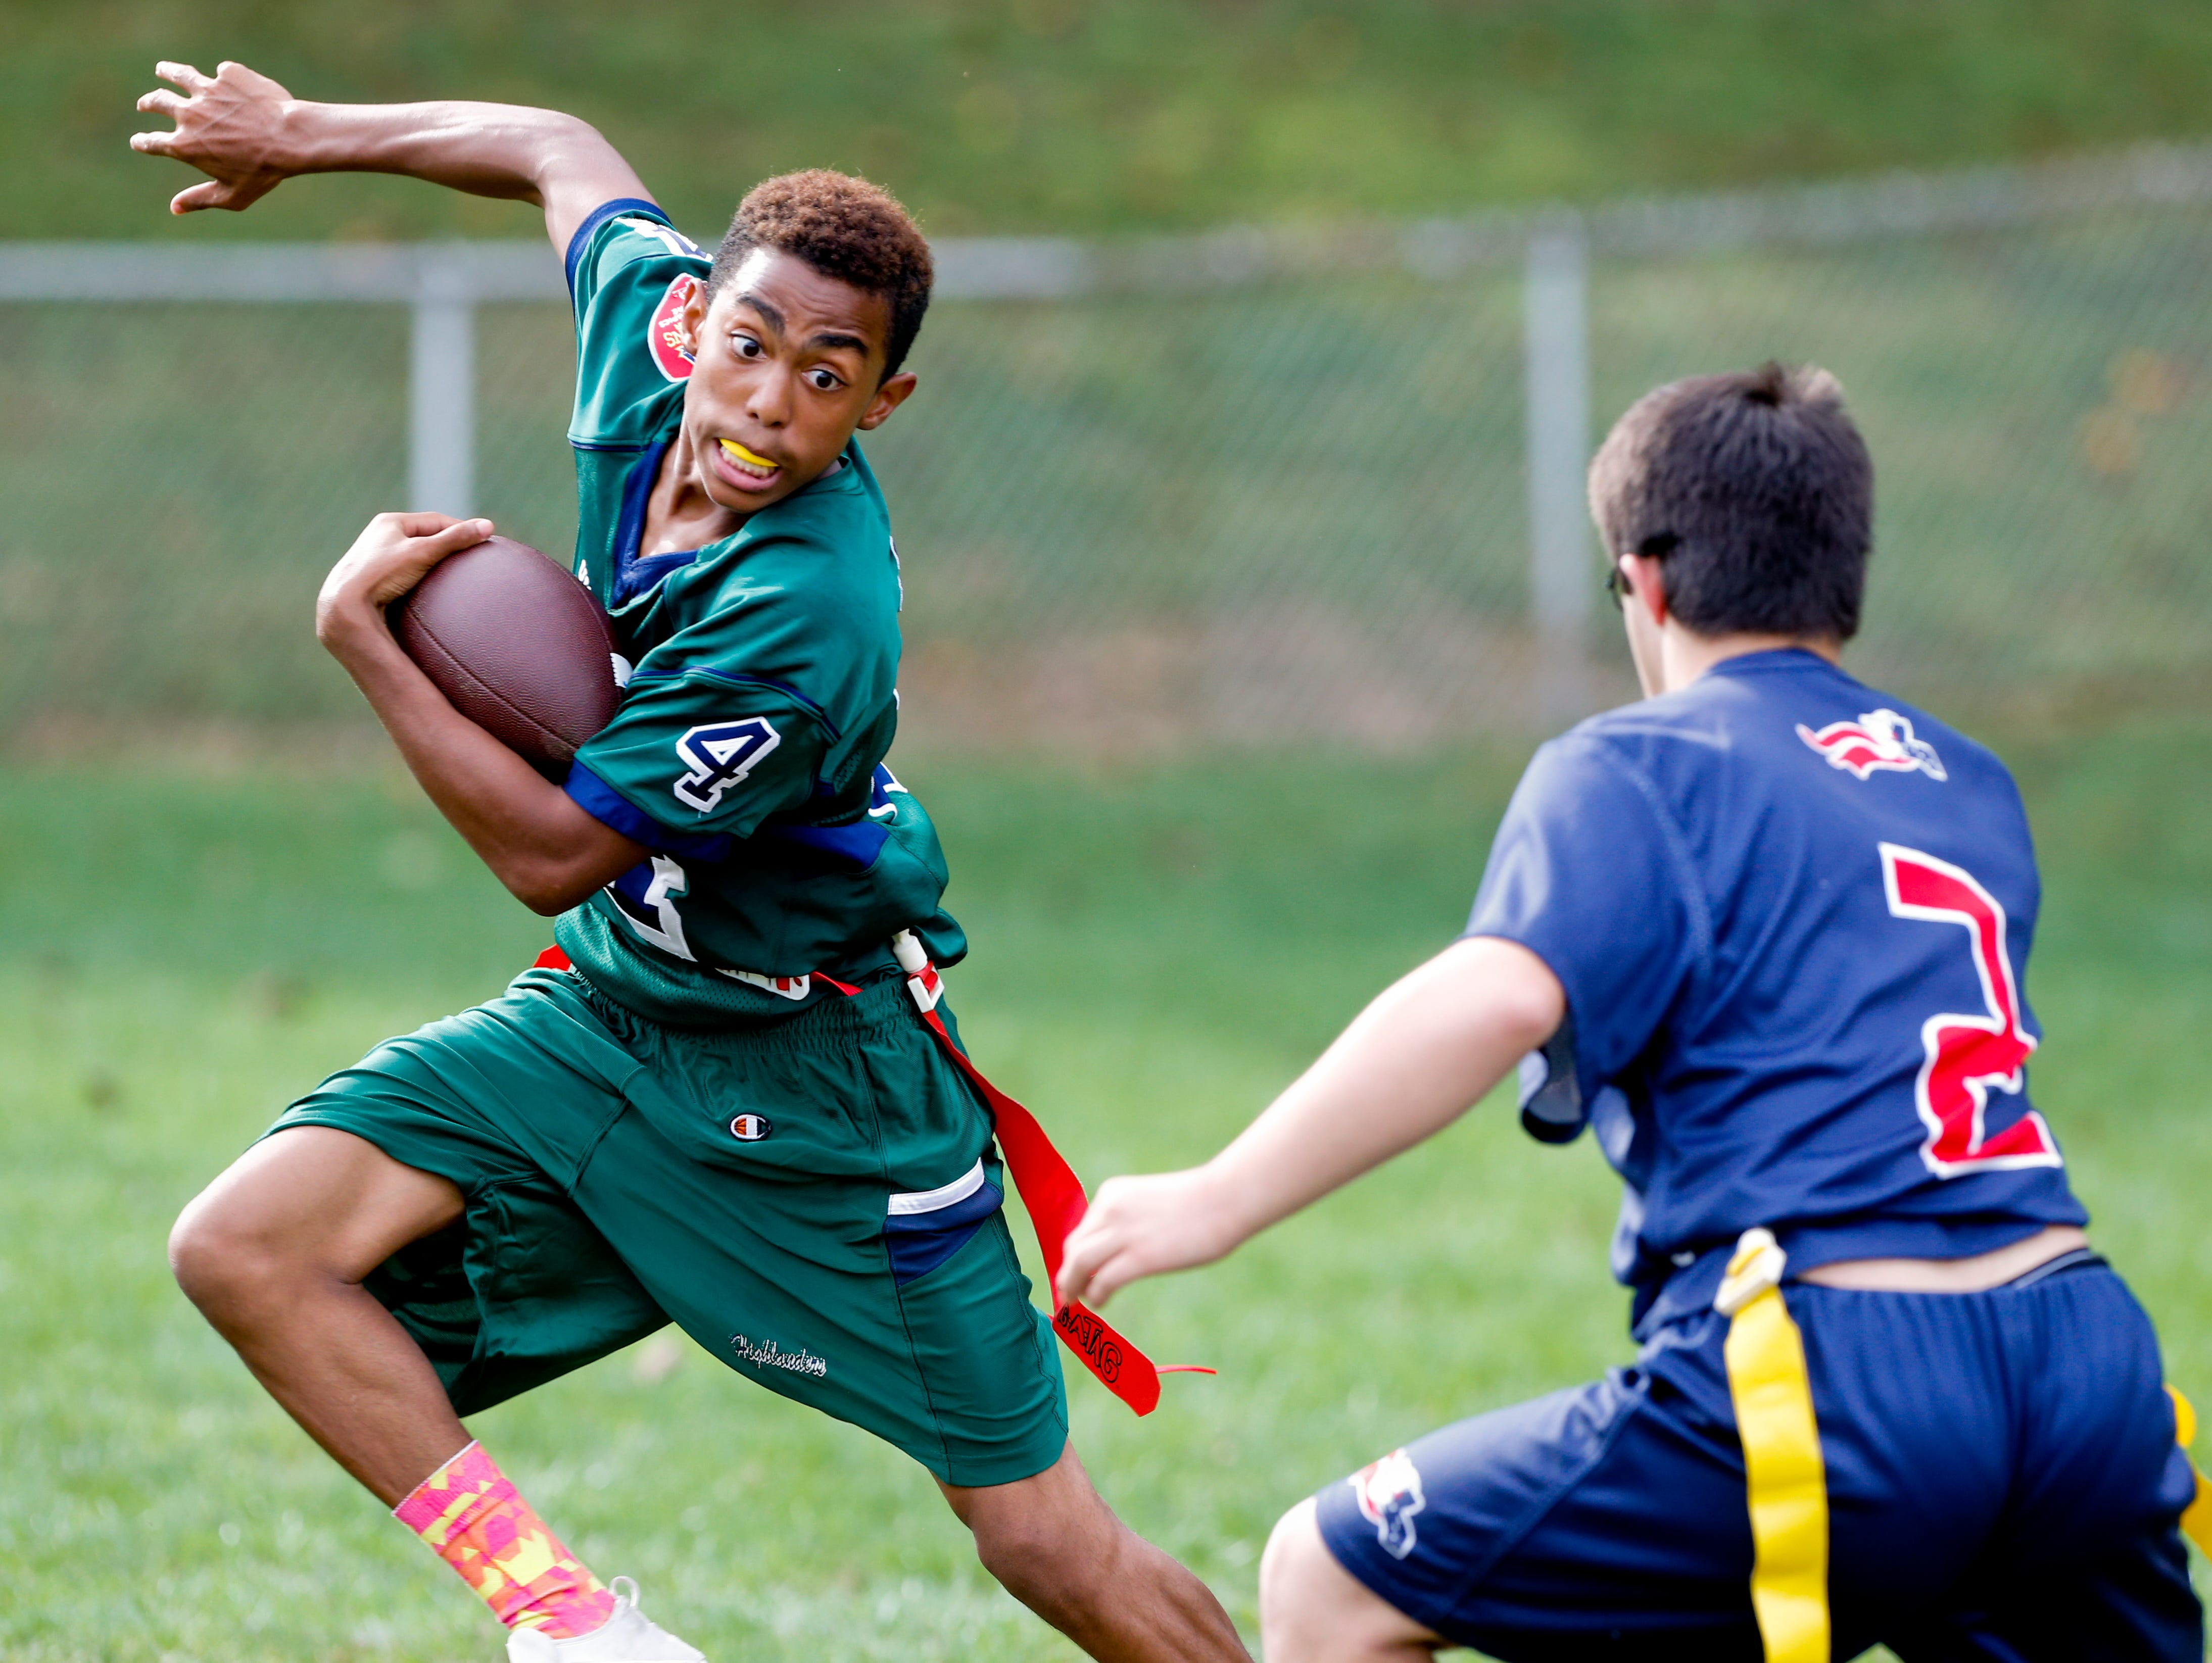 McKean's Otis Ledbetter tries to avoid a tackle by Newark Charter's Donovan Schwartz in an opening game of the Unified flag football season at McKean High School Tuesday.